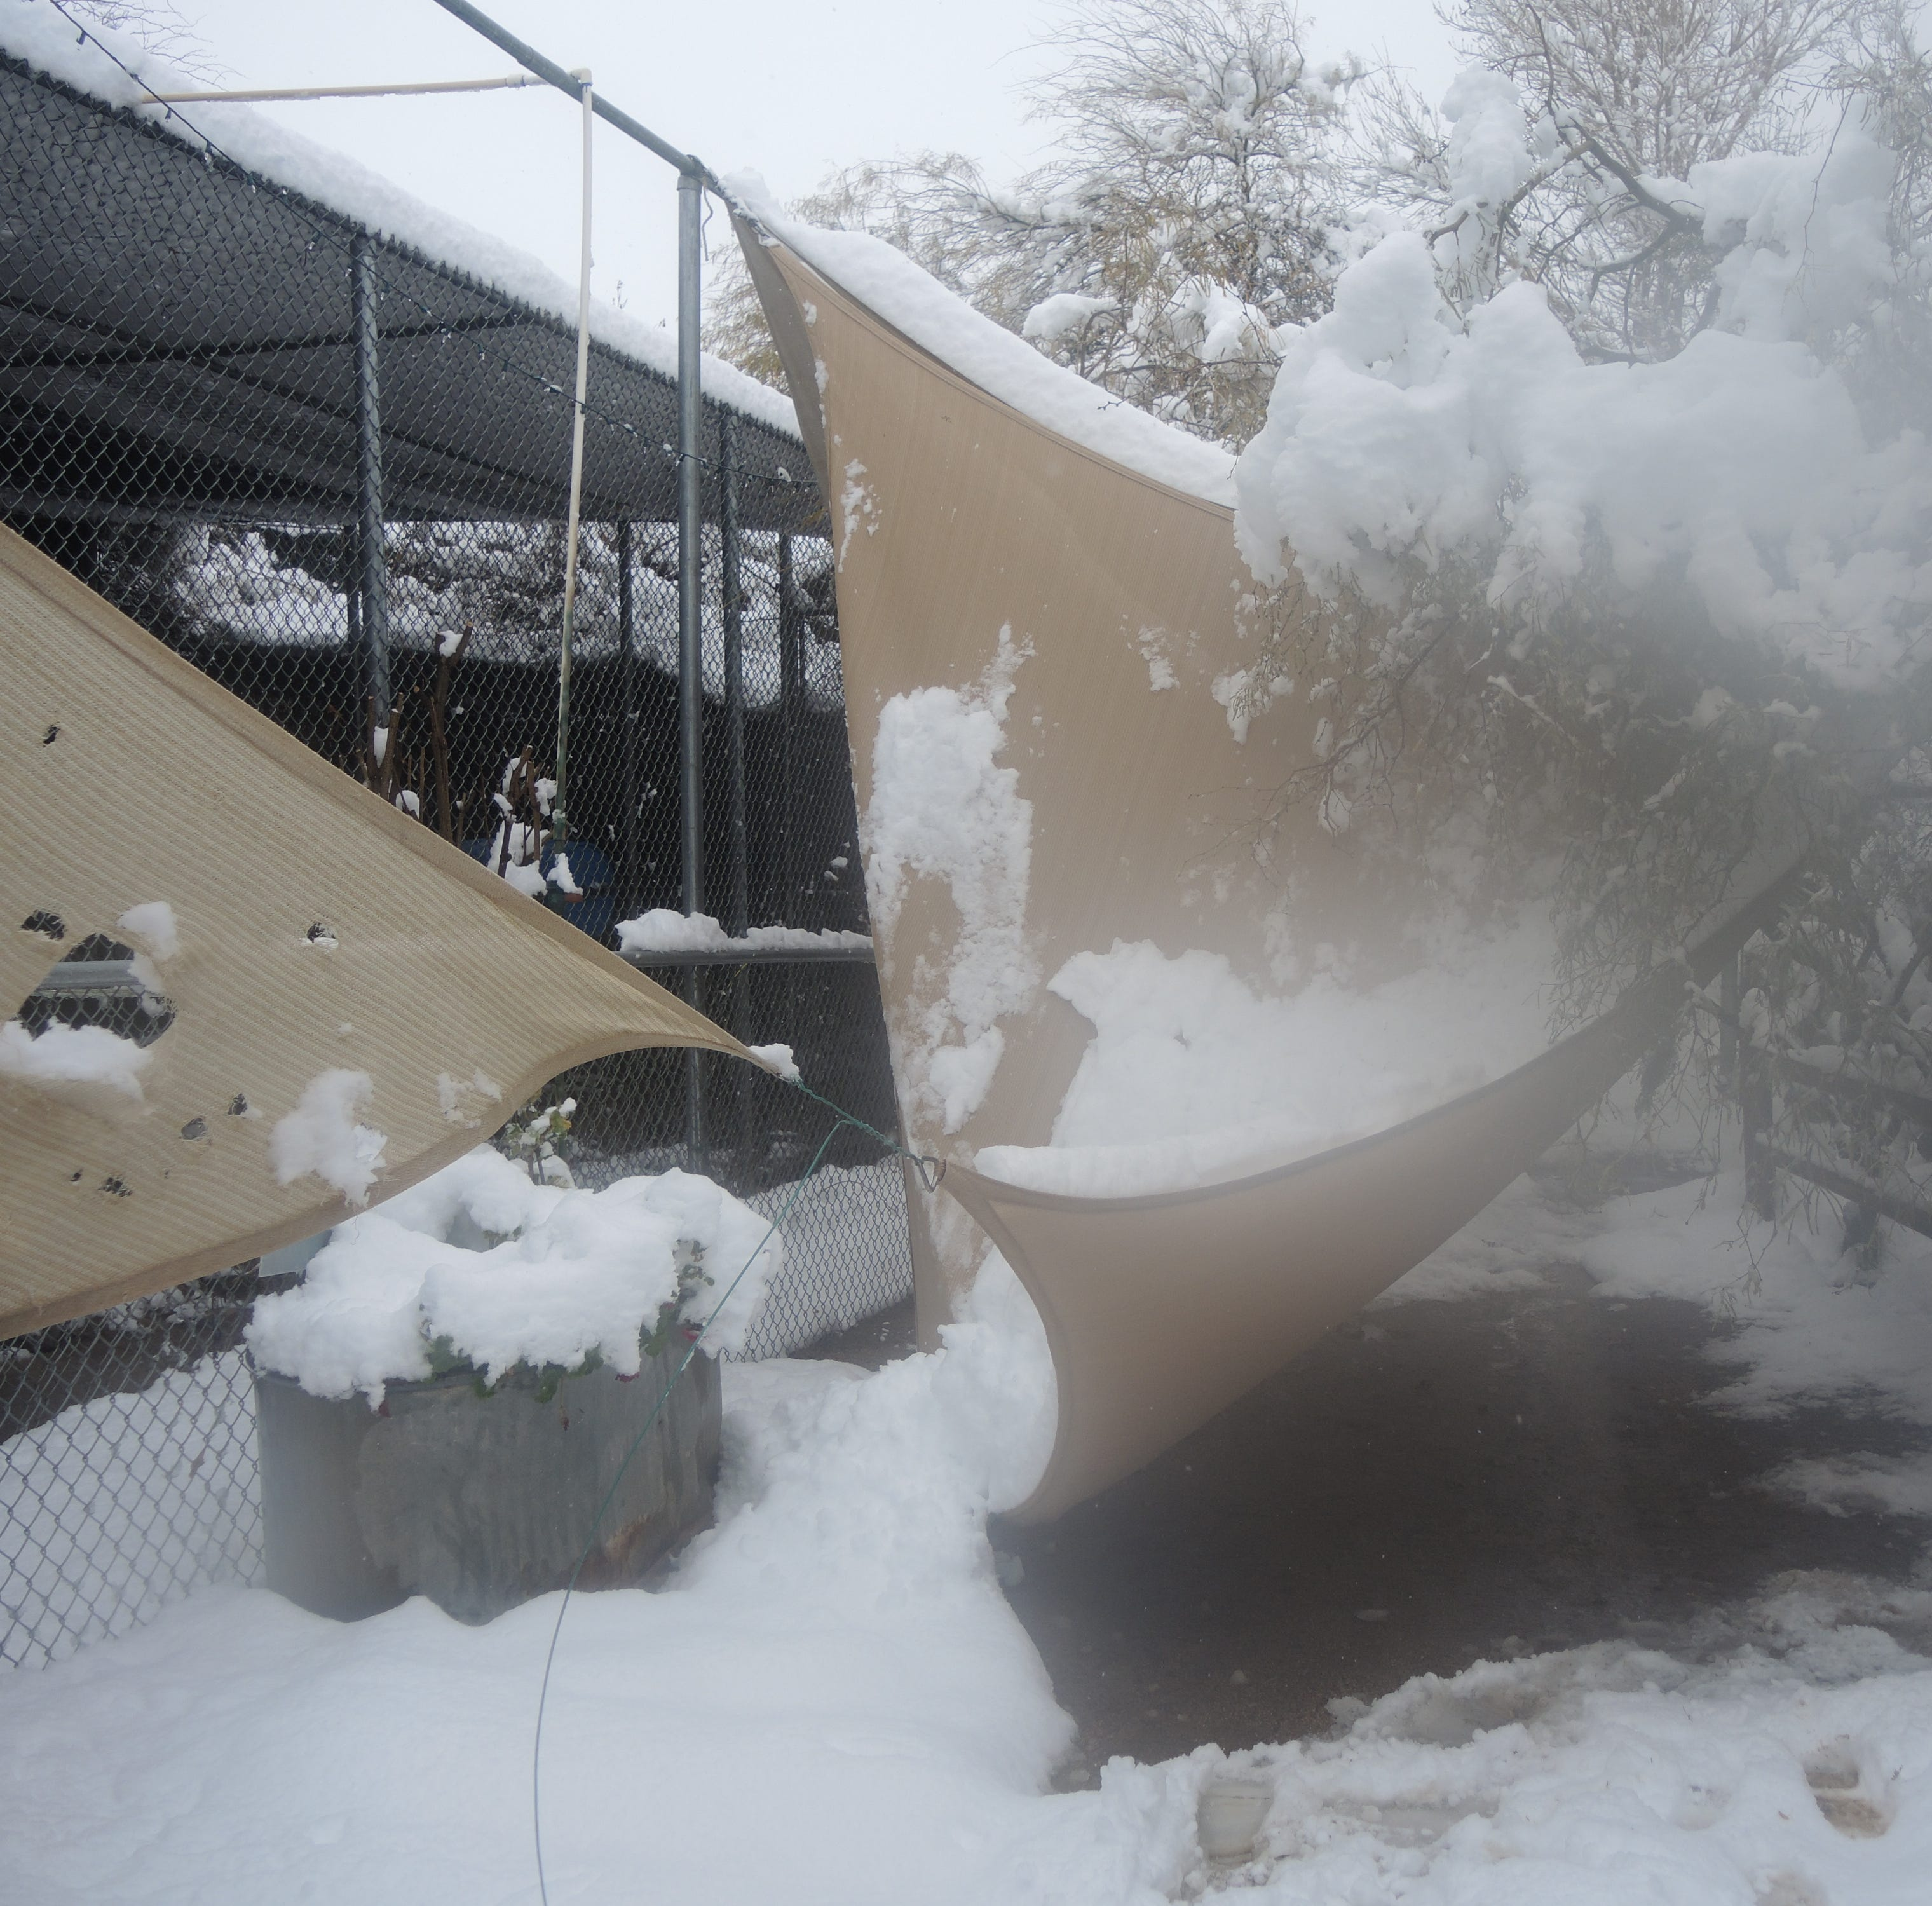 Arizona storm updates: Snow damages wildlife center in Scottsdale; wet roads causing spinouts